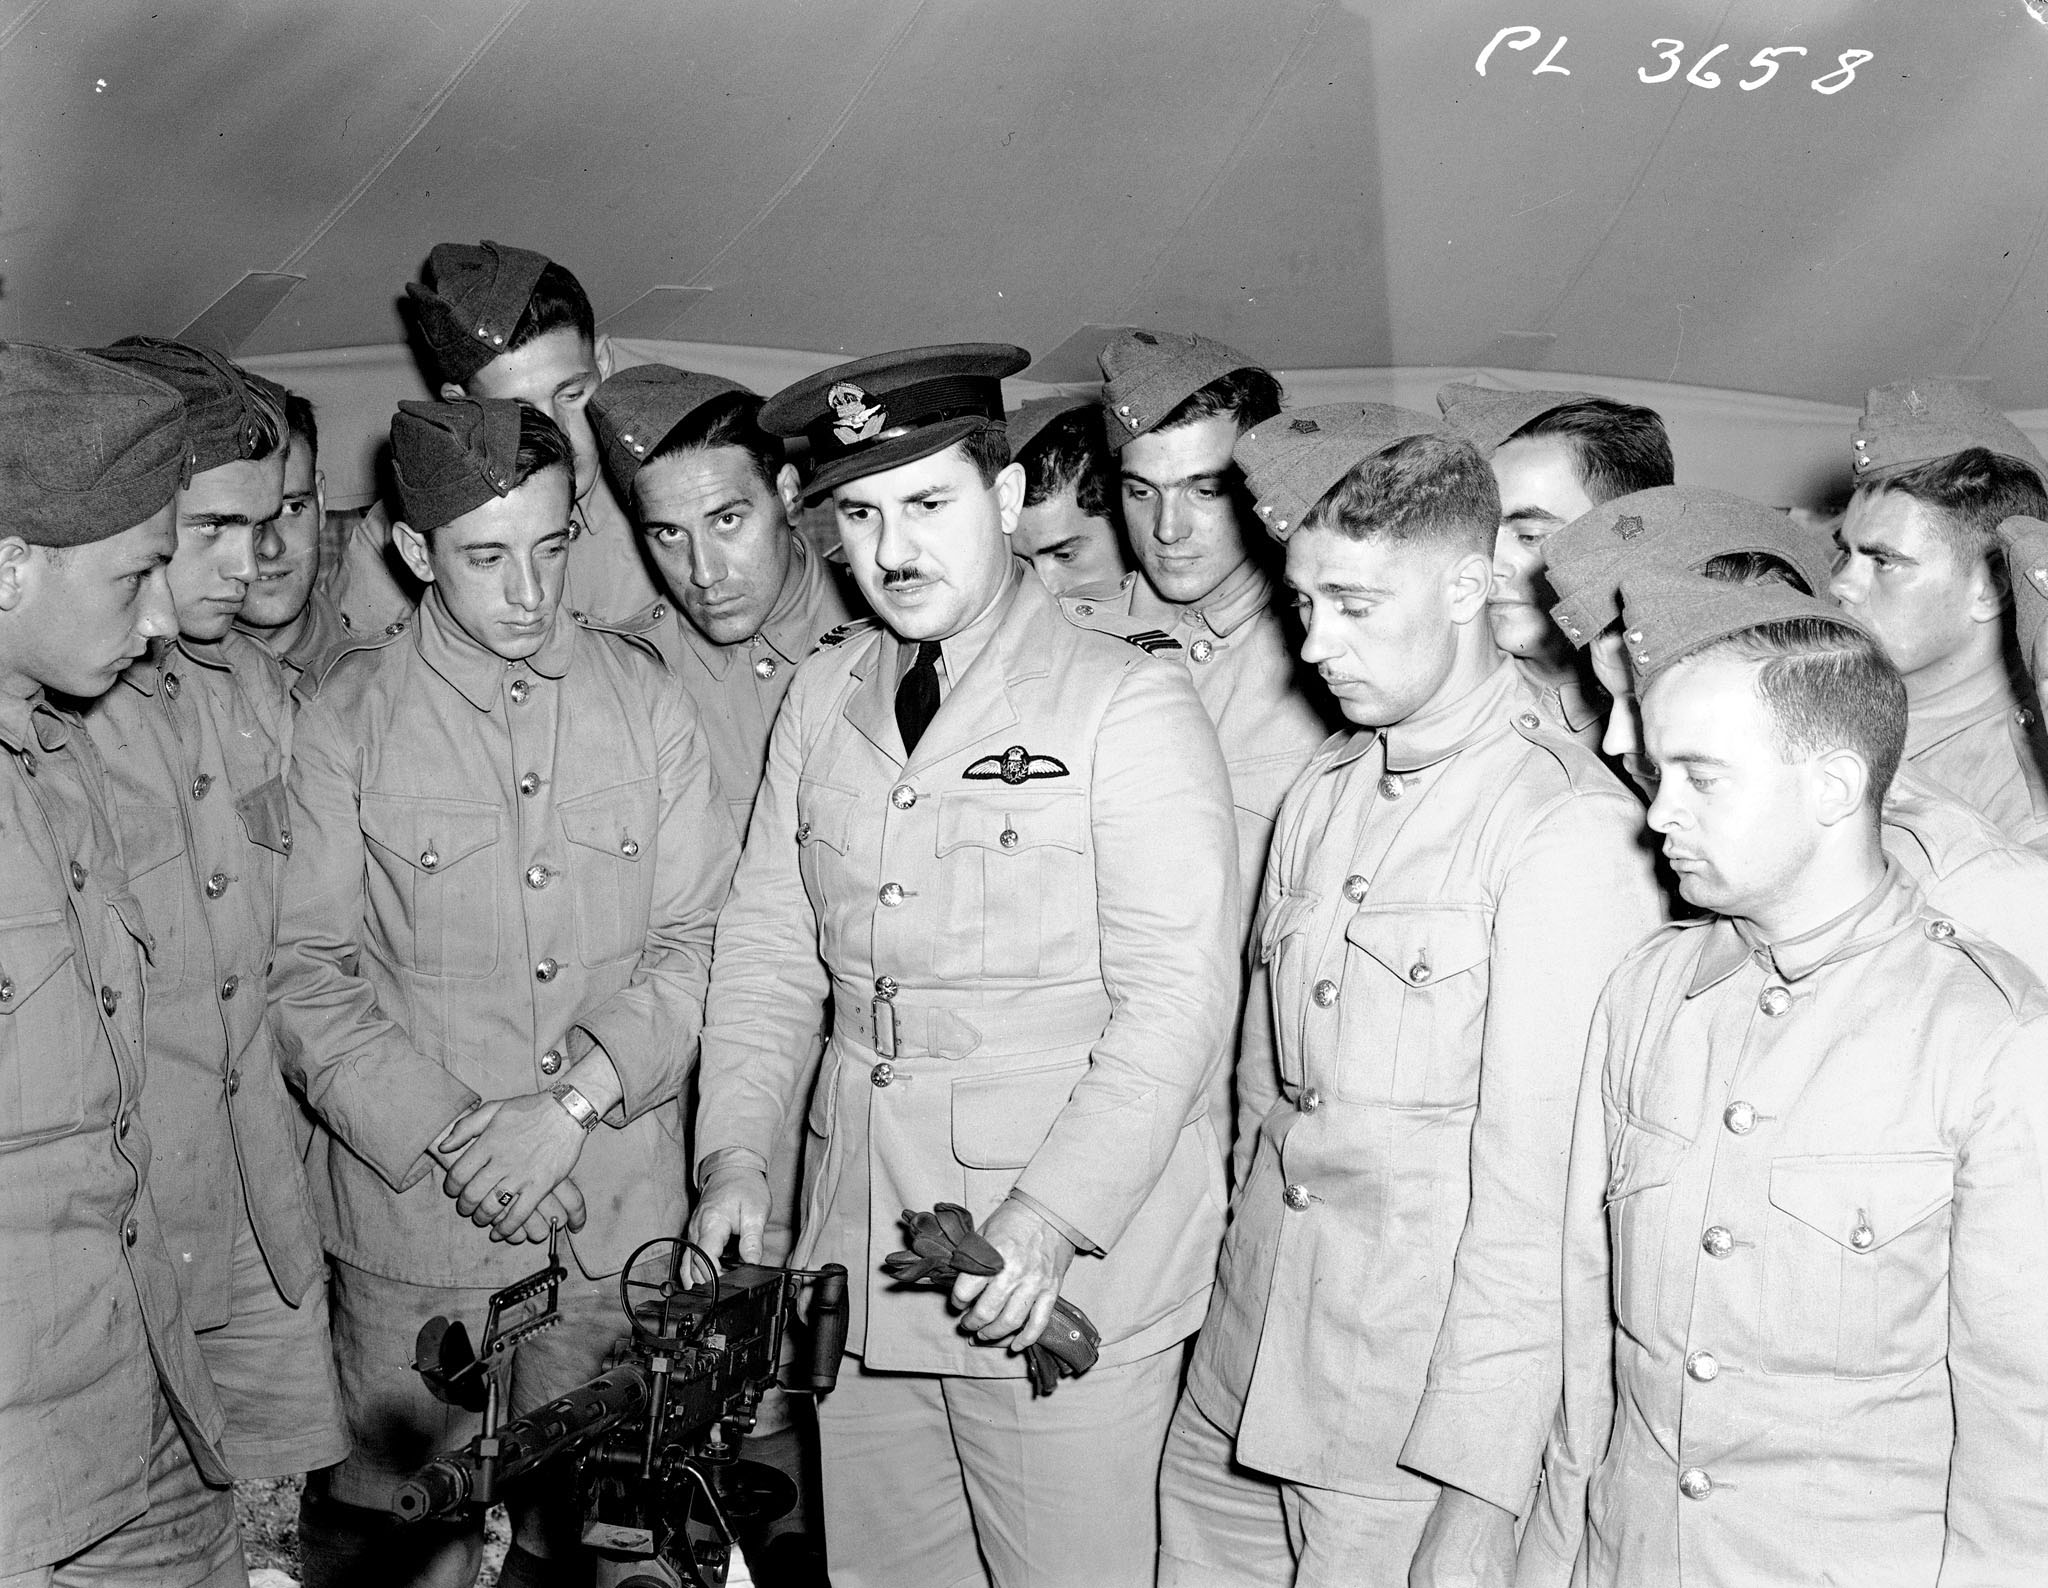 Squadron Leader Jean-Paul Desloges explains the workings of a Browning machine gun to trainees at No. 3 Air Training Corps in Montreal, Quebec, on June 11, 1941. PHOTO: DND